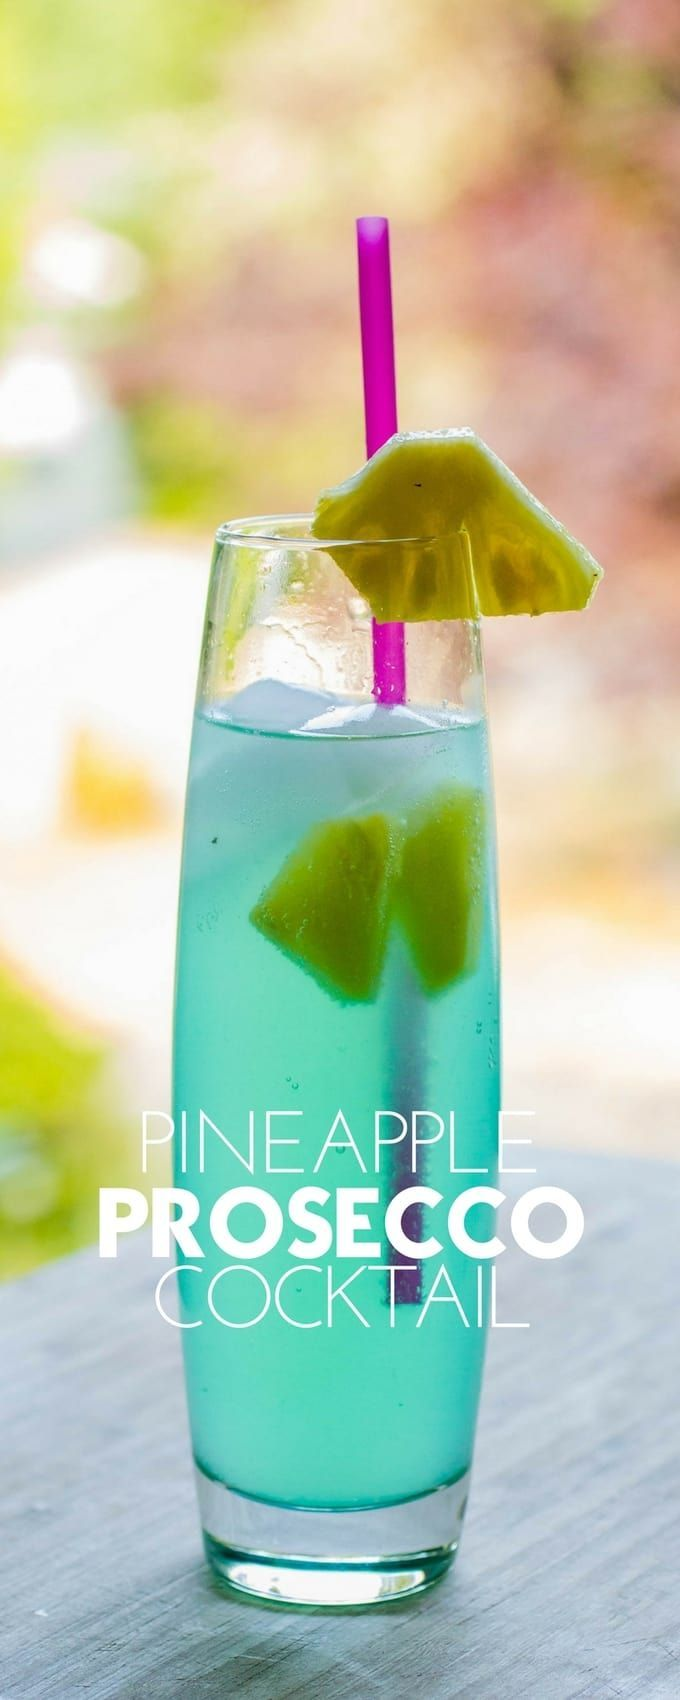 This pineapple prosecco cocktail is like your favorite mimosa fell in love with a pineapple, and a shot of the ever-classy Kinky Blue Liqueur.